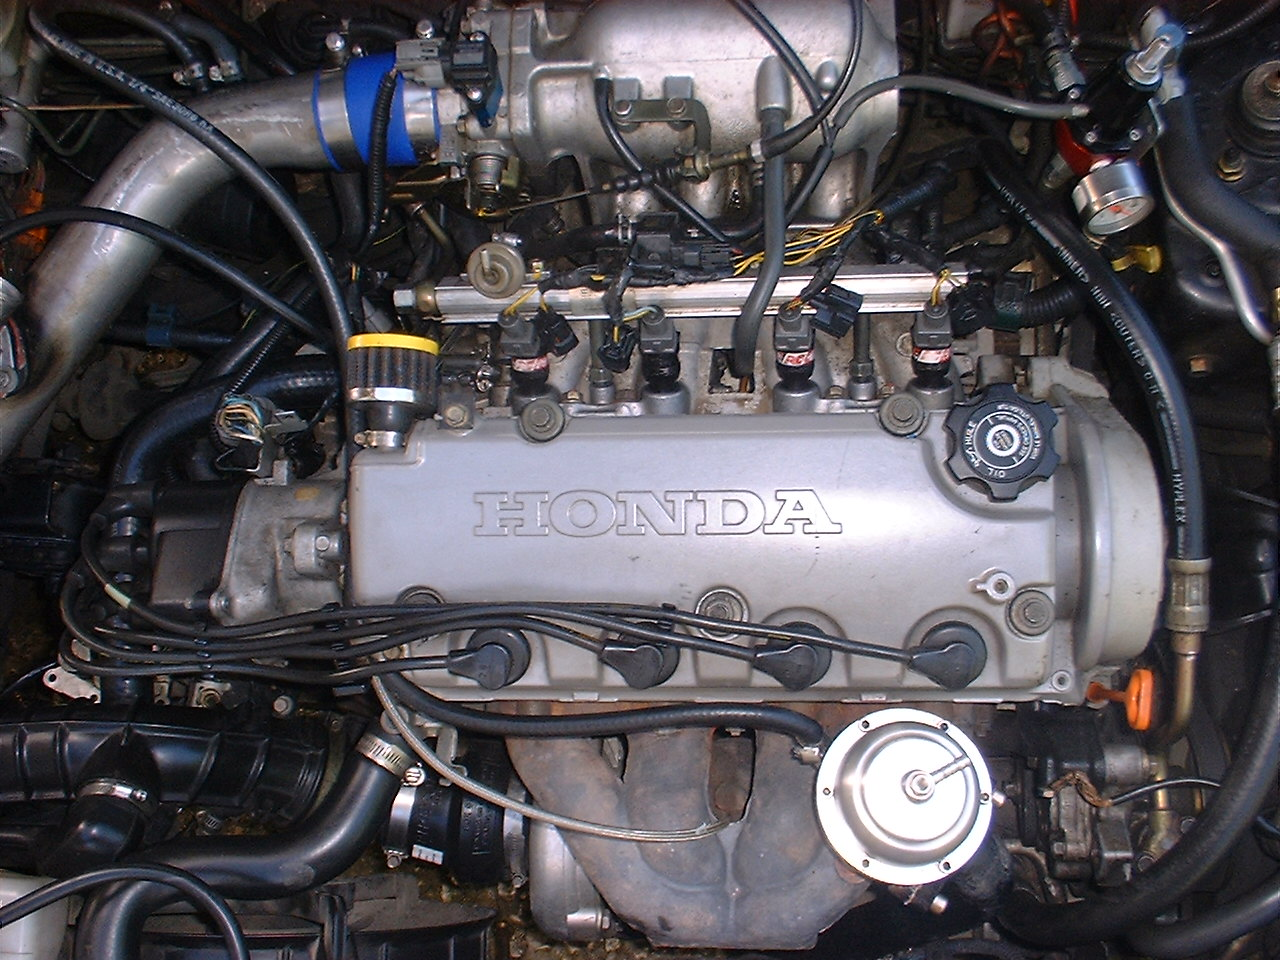 1996 Honda civic ex turbo